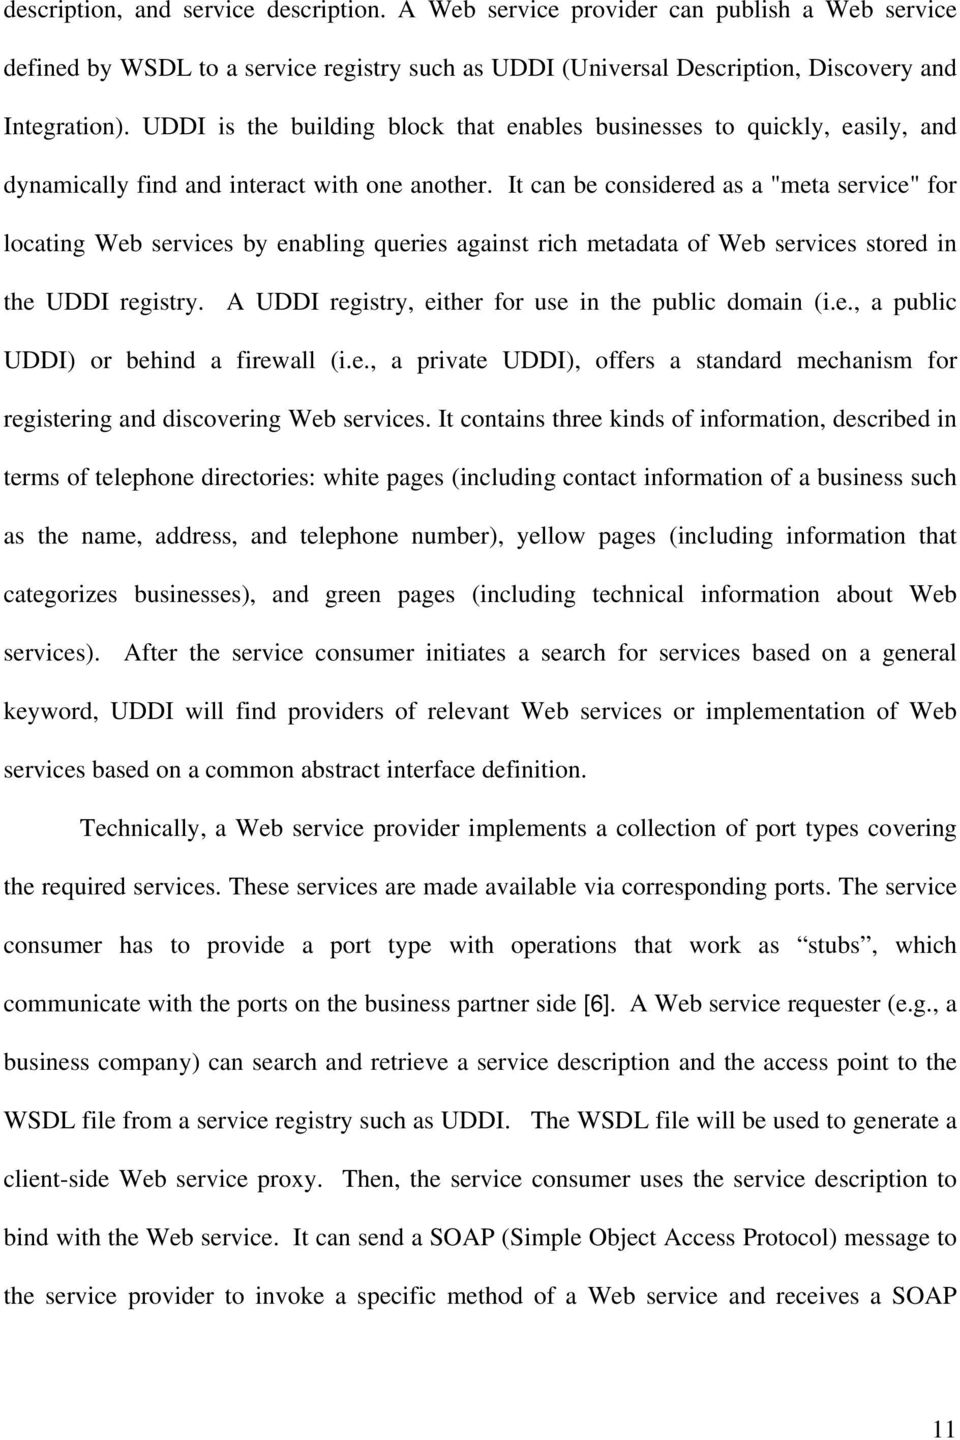 "It can be considered as a ""meta service"" for locating Web services by enabling queries against rich metadata of Web services stored in the UDDI registry."